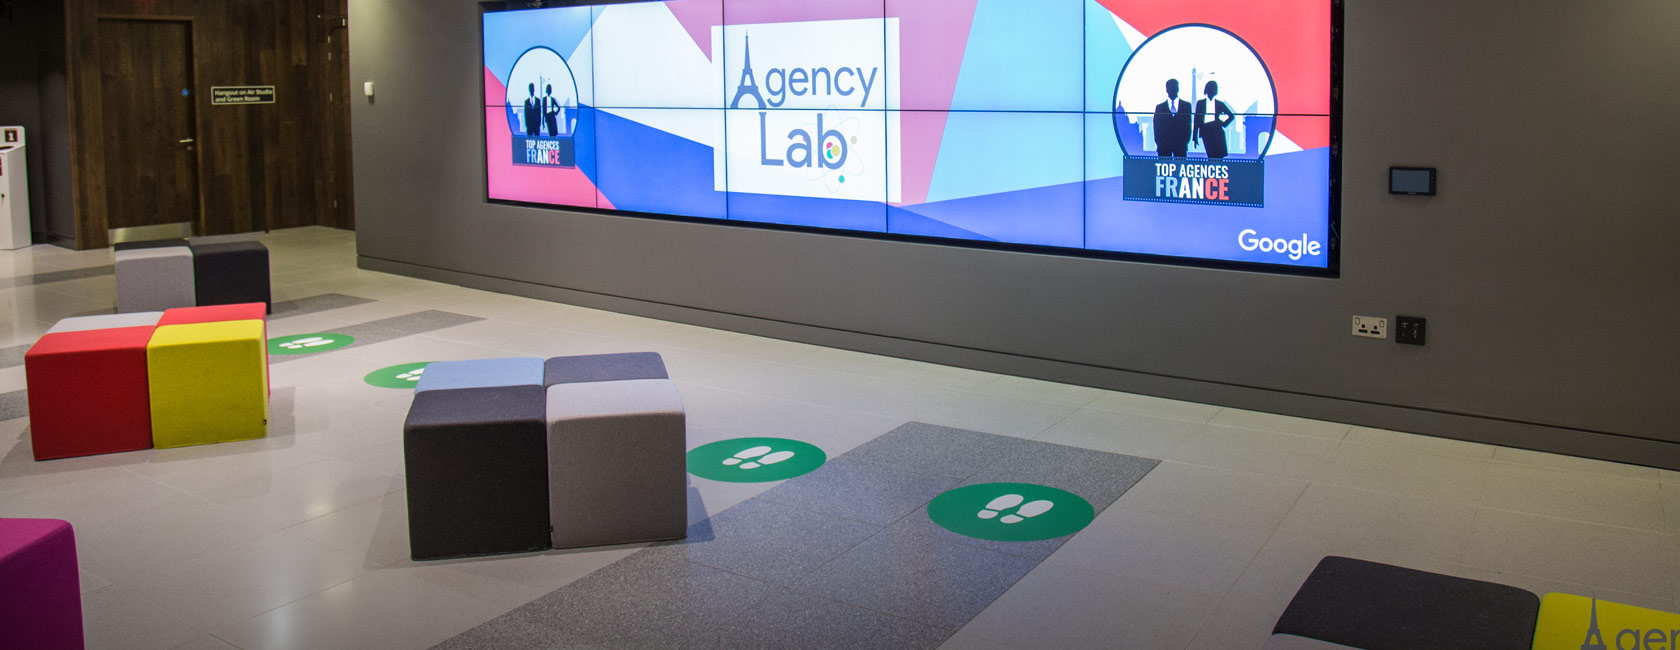 Google Agency Lab 2015